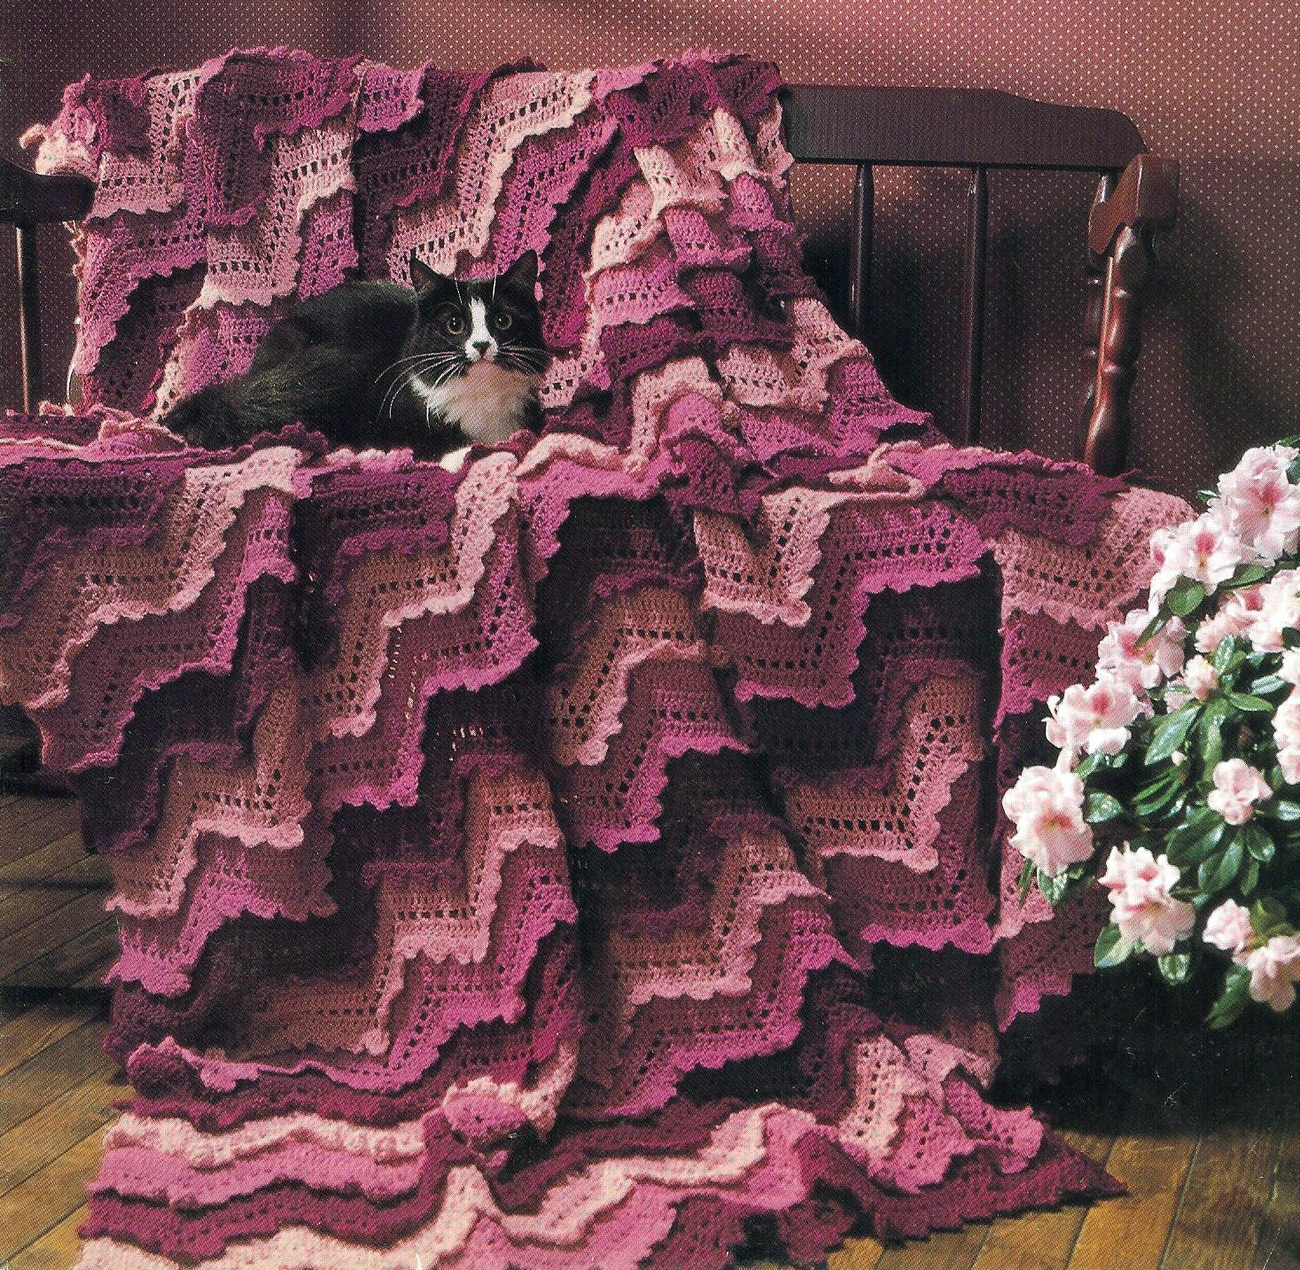 Crochet Patterns Unique : VICTORIAN RUFFLED RIPPLE AFGHAN CROCHET PATTERN~UNIQUE - Afghans